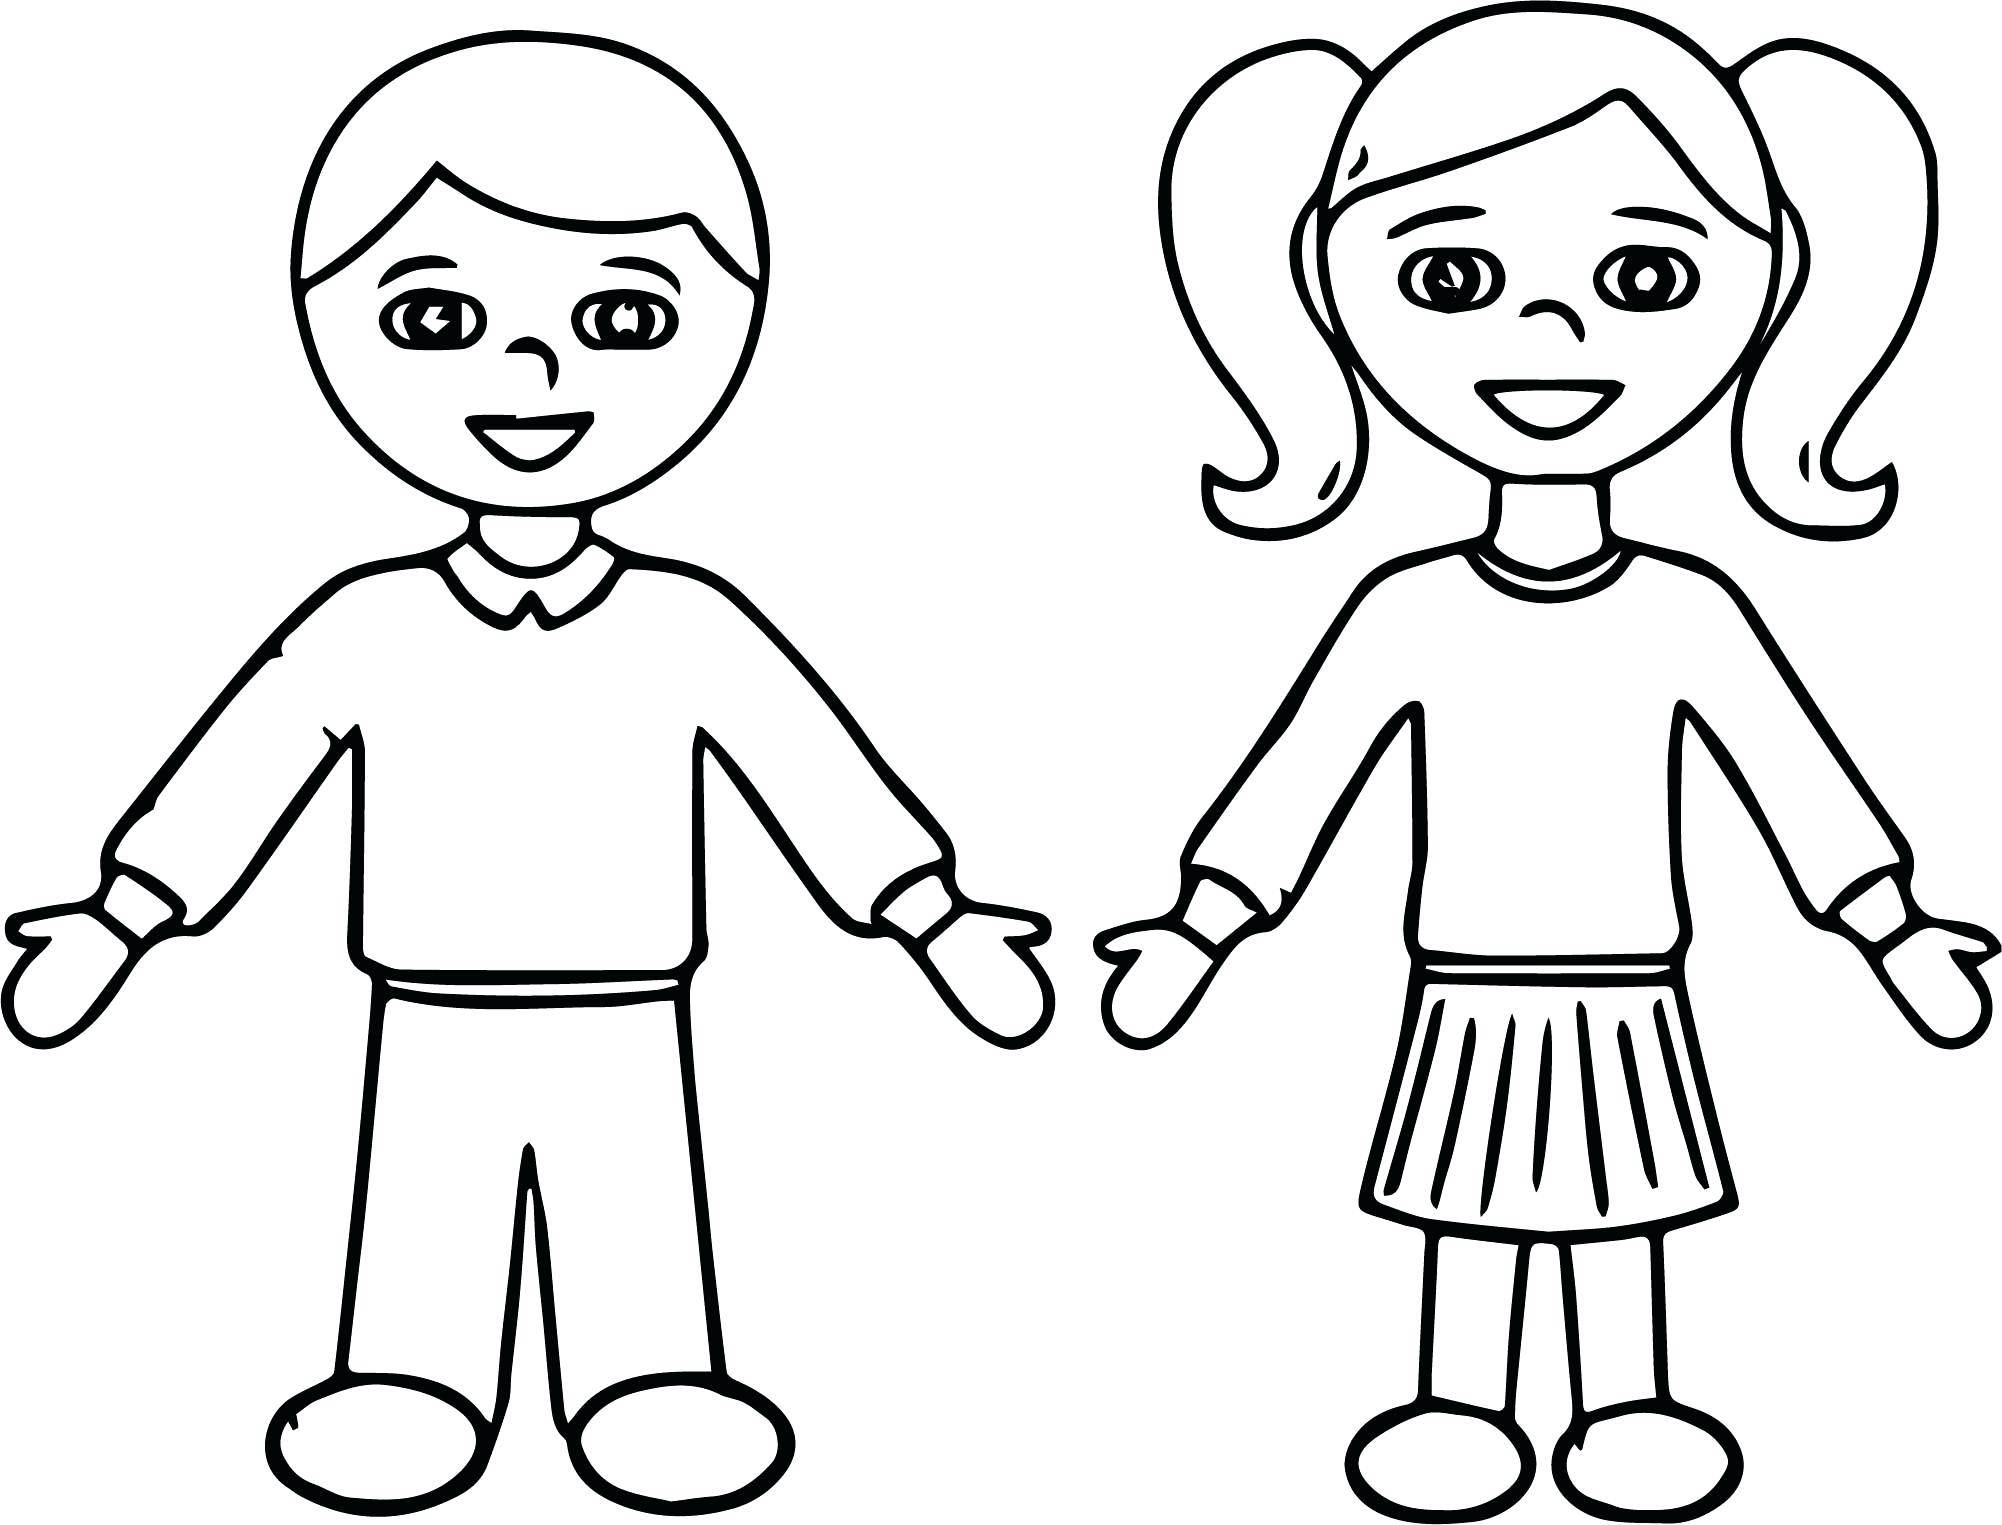 2002x1525 Fresh Students Coloring Page Collection Printable Coloring Sheet